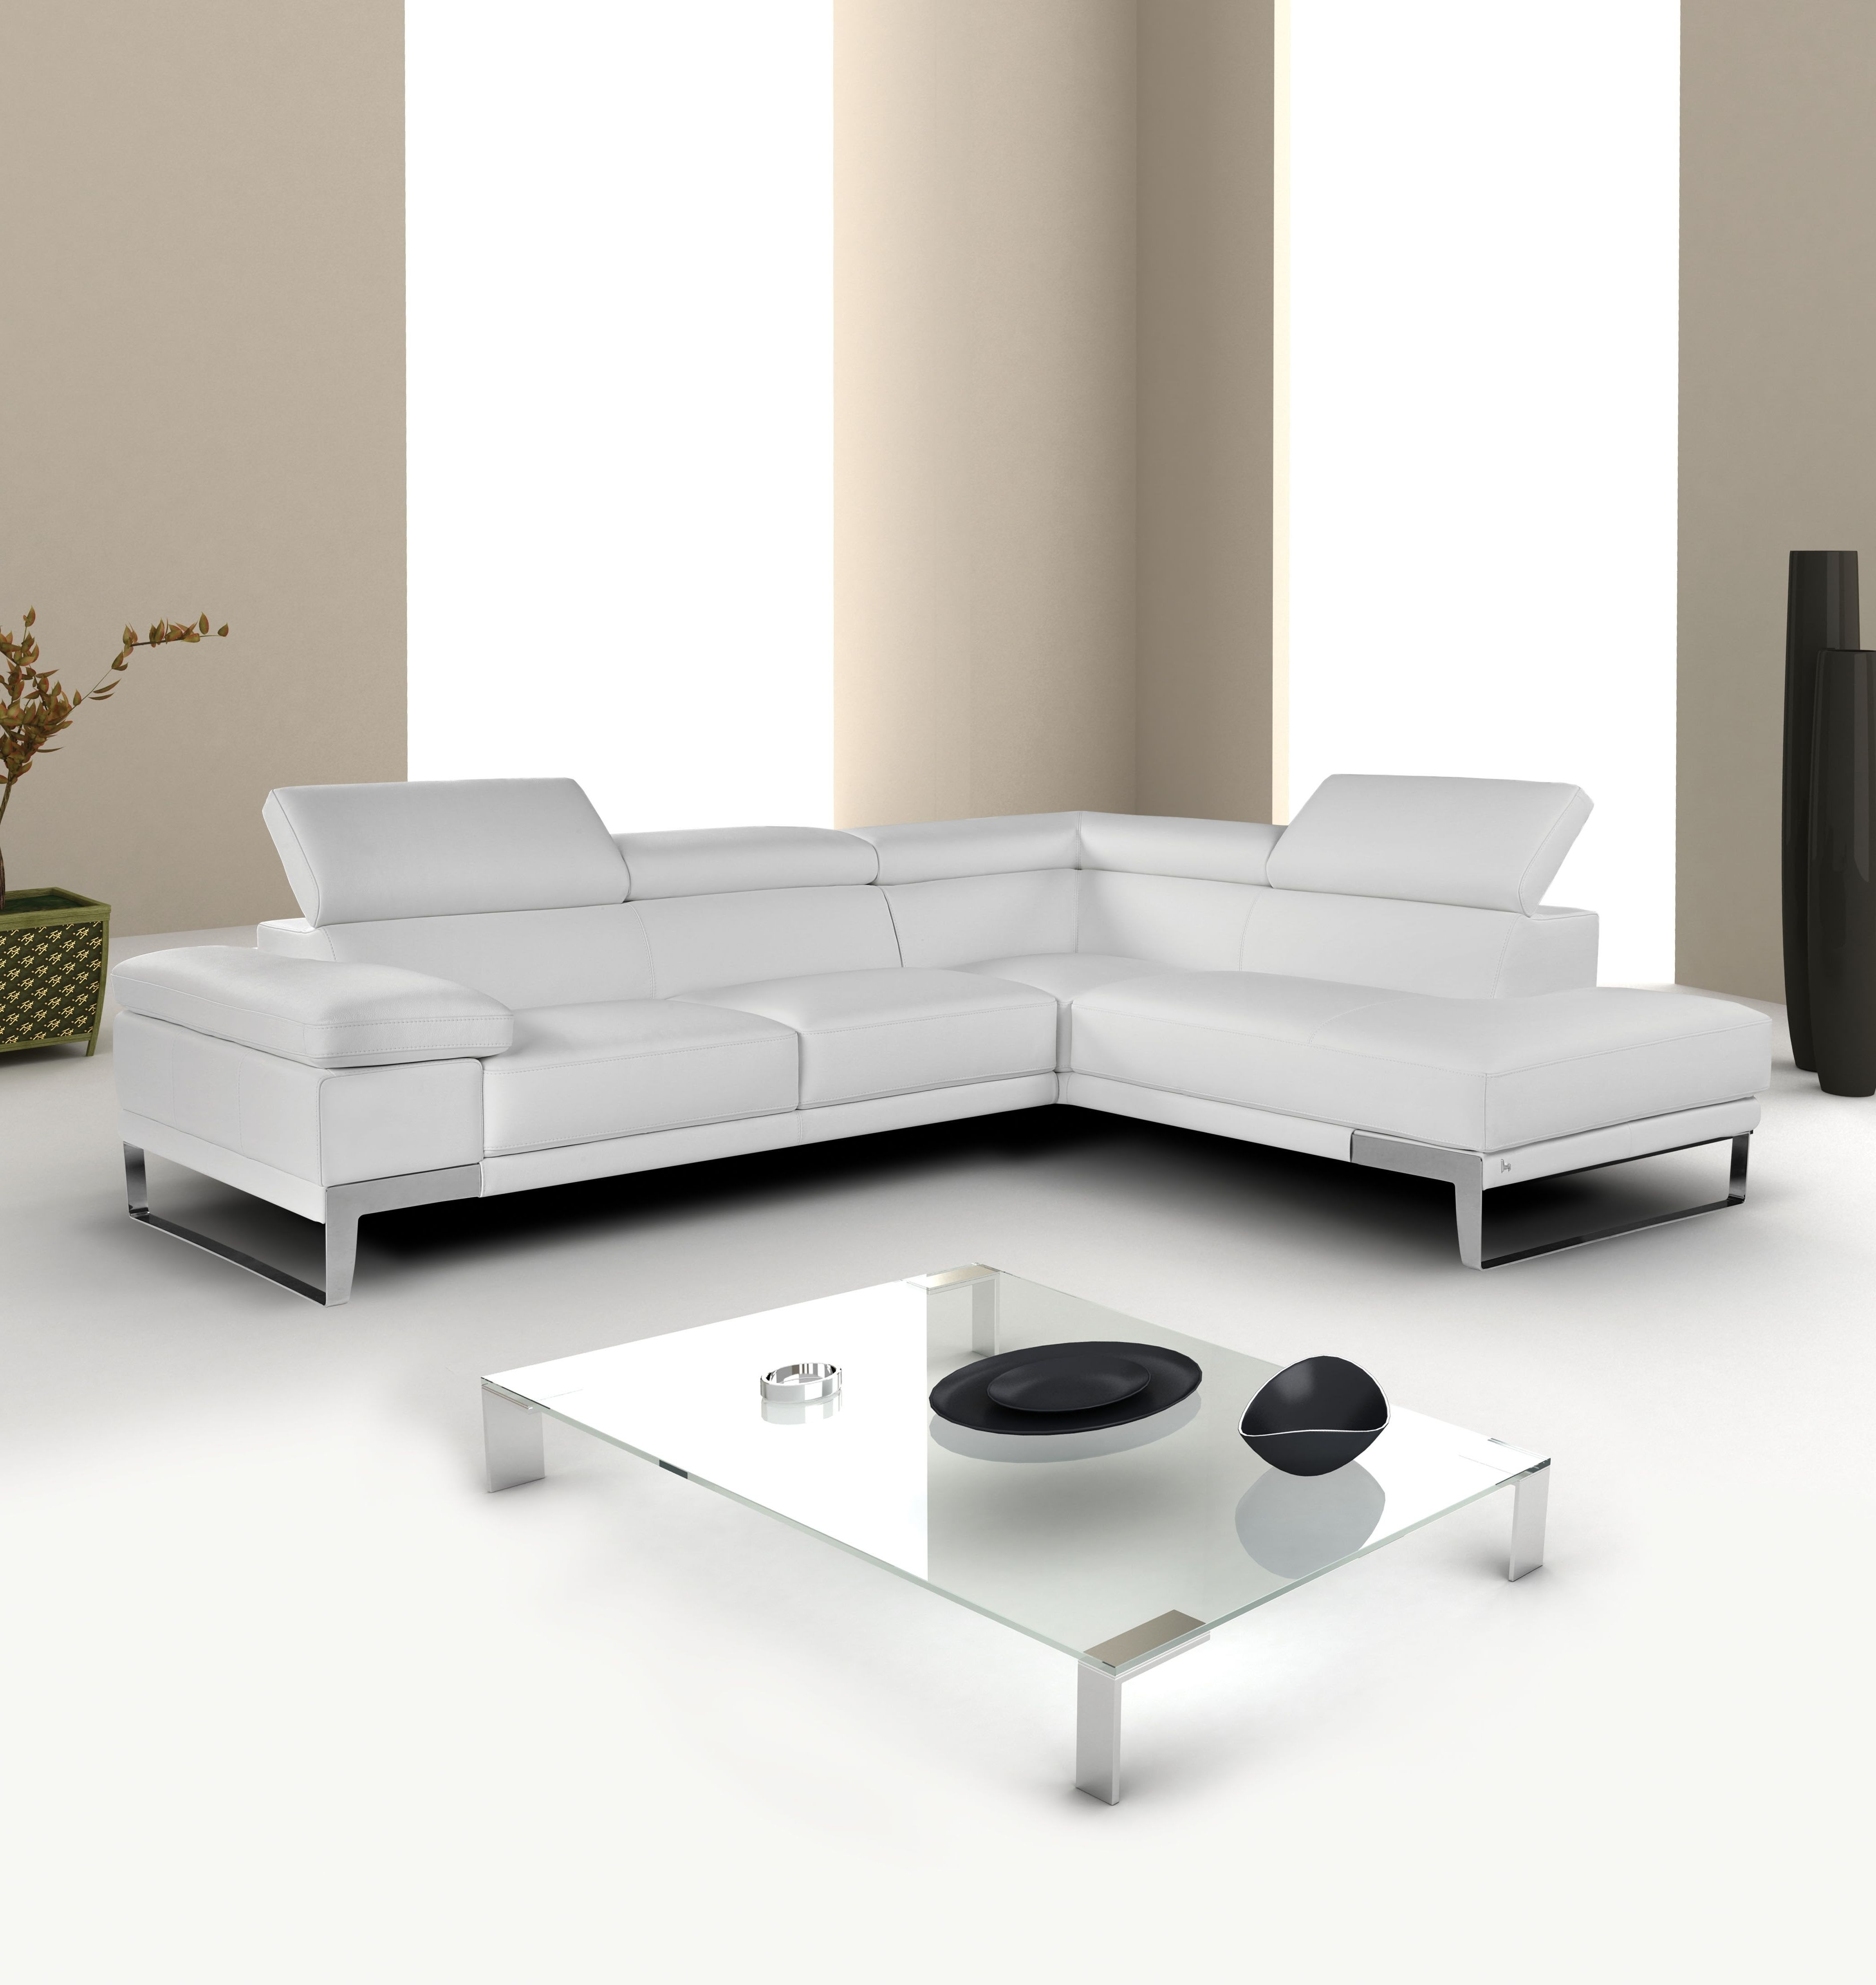 Vancouver Bc Canada Sectional Sofas Regarding Most Recently Released Sectional Modern Sofa Interior White Button Leather Furniture (Gallery 11 of 20)